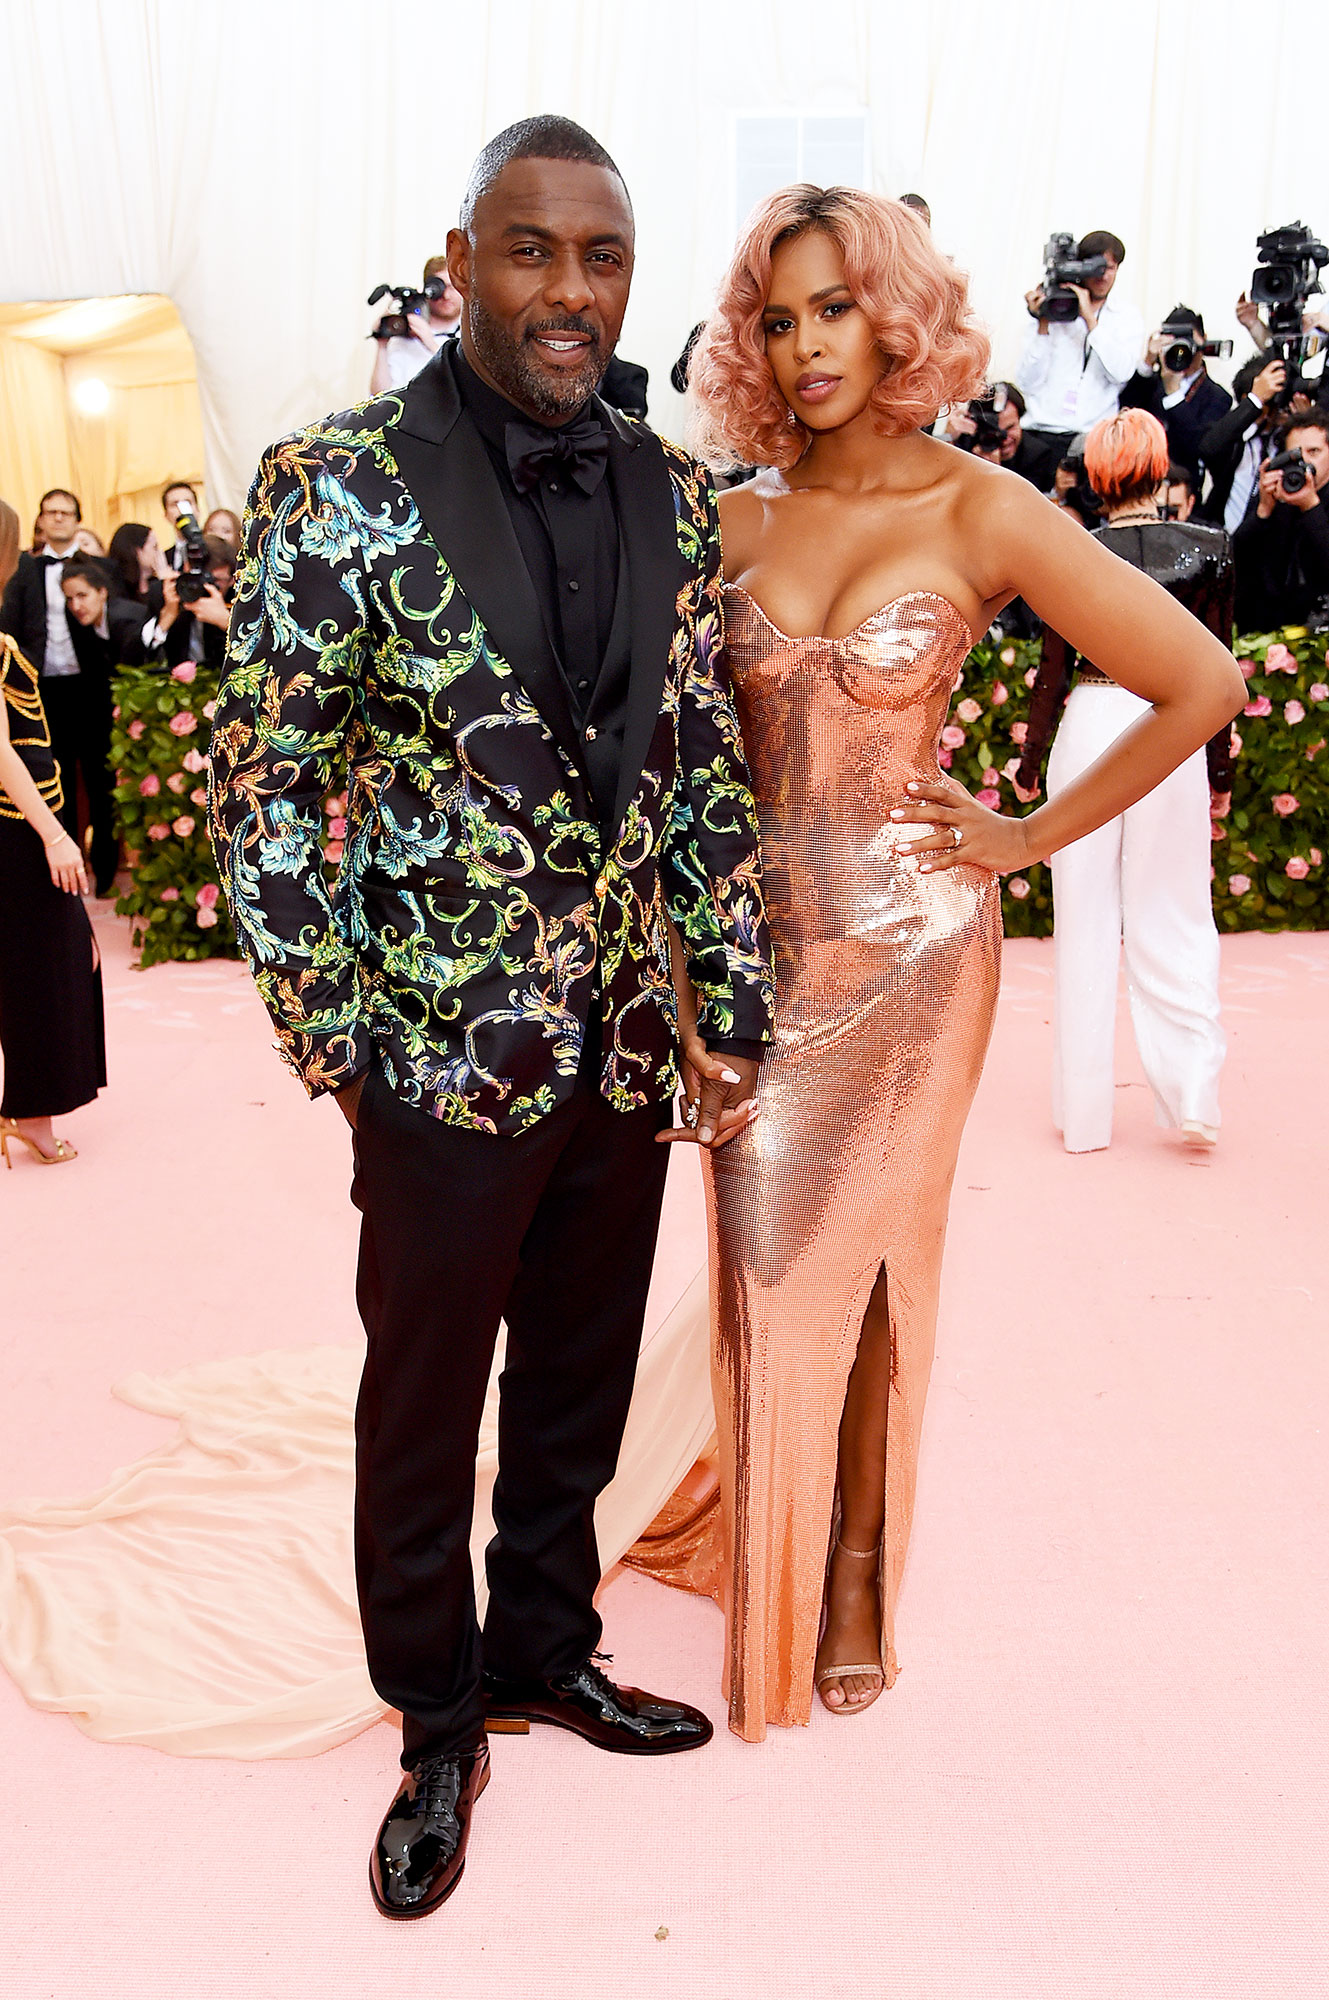 Idris Elba and Sabrina Dhowre met gala 2019 couples - Basking in that newlywed glow, the actor rocked a paisley-print jacket, while his bride stunned in a liquid metal rose gold gown (and matching hair!).